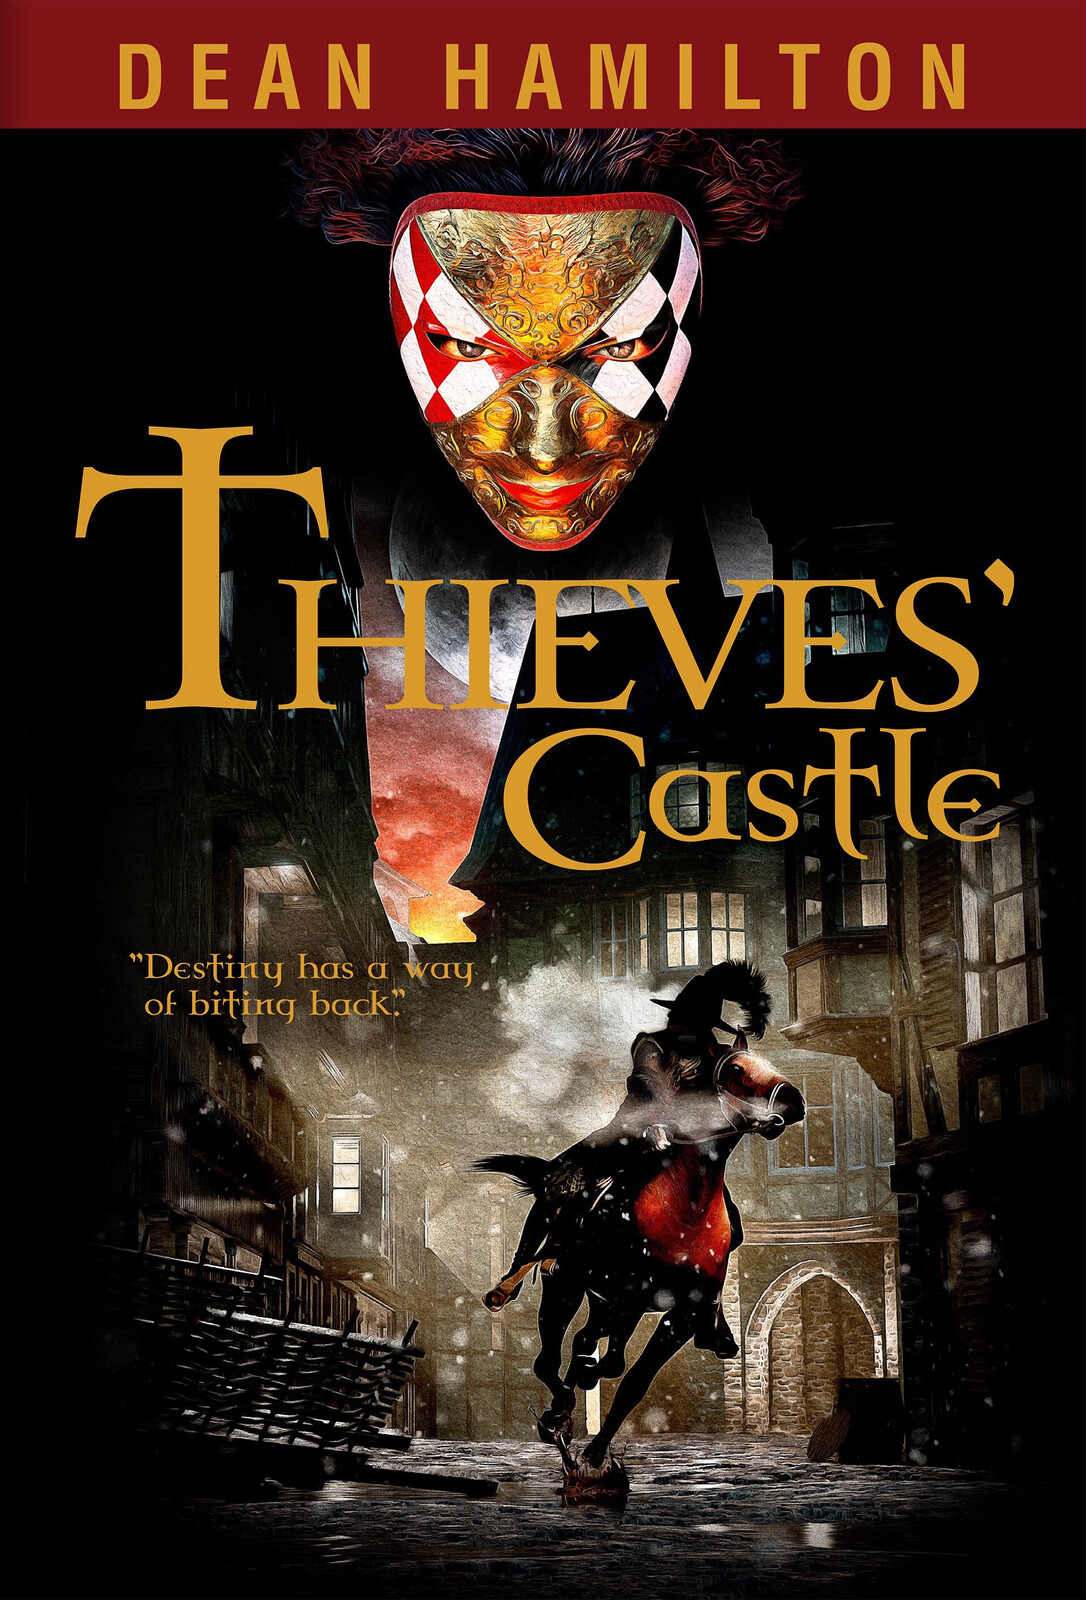 Thieves' Castle Book Cover Illustration